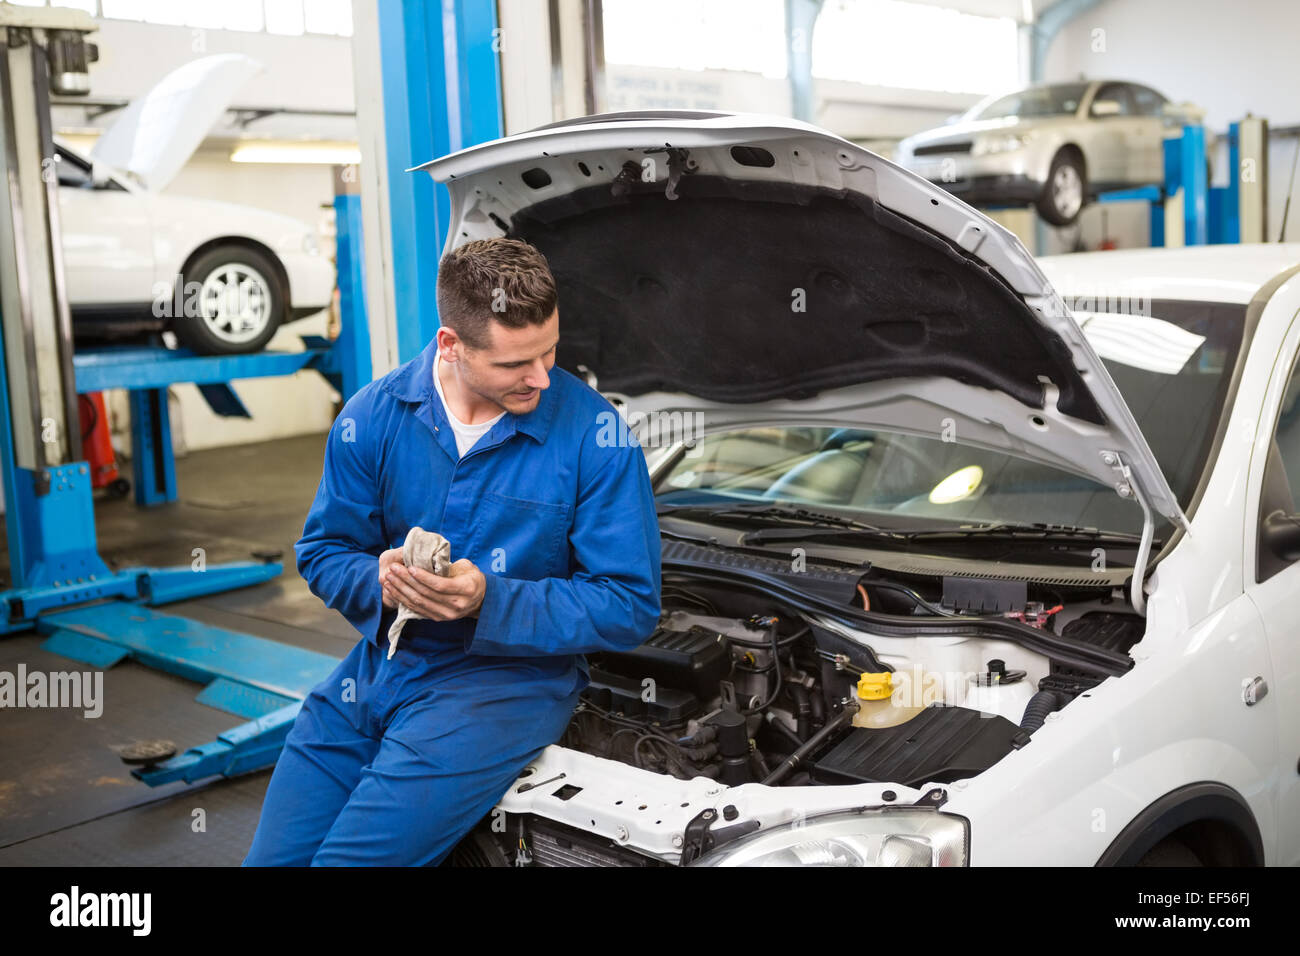 Smiling mechanic looking at car - Stock Image